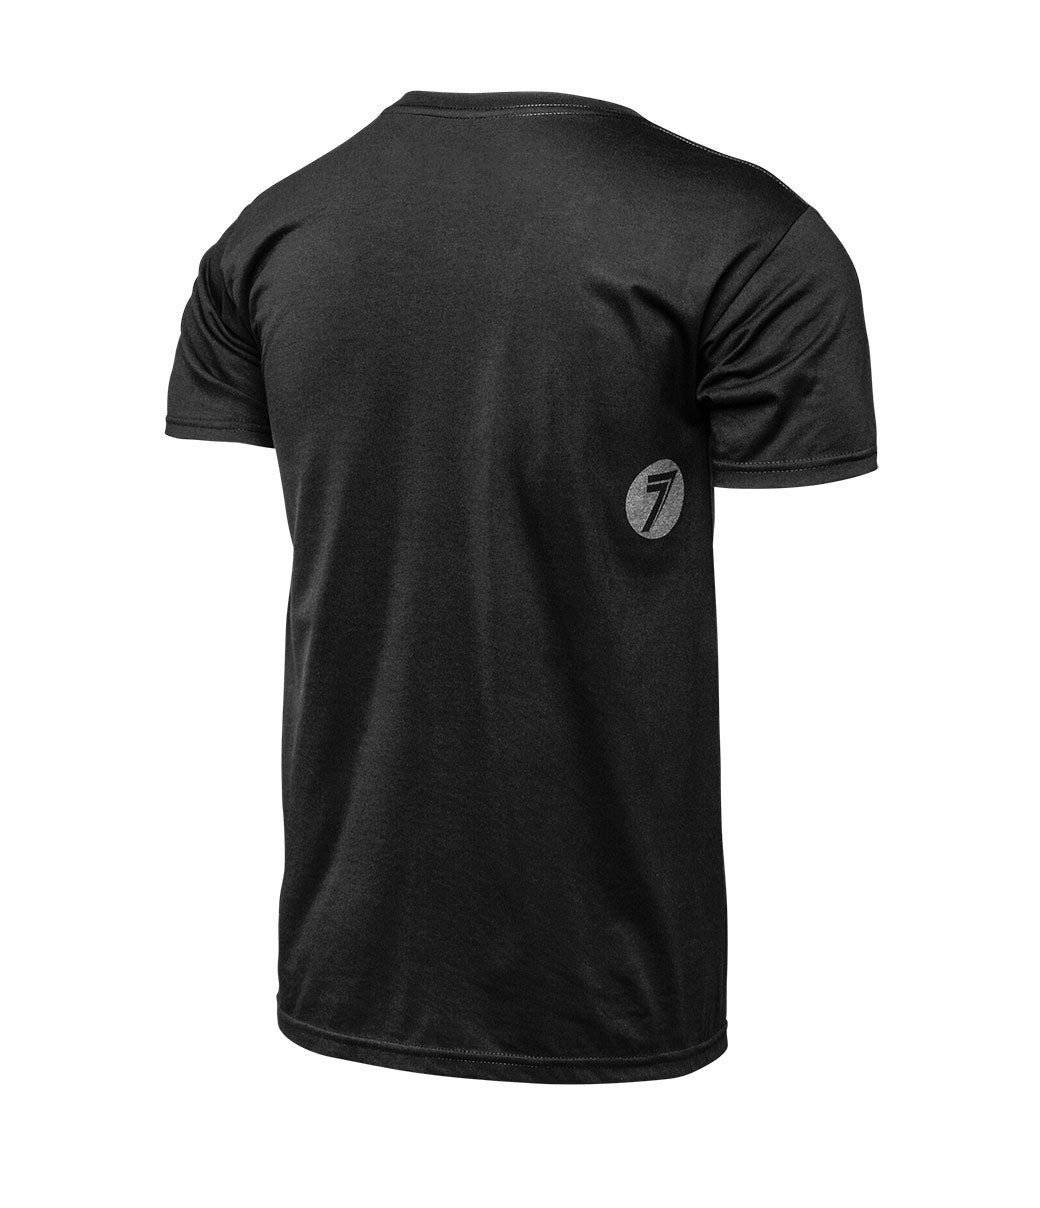 Escutcheon Tee - Black Heather